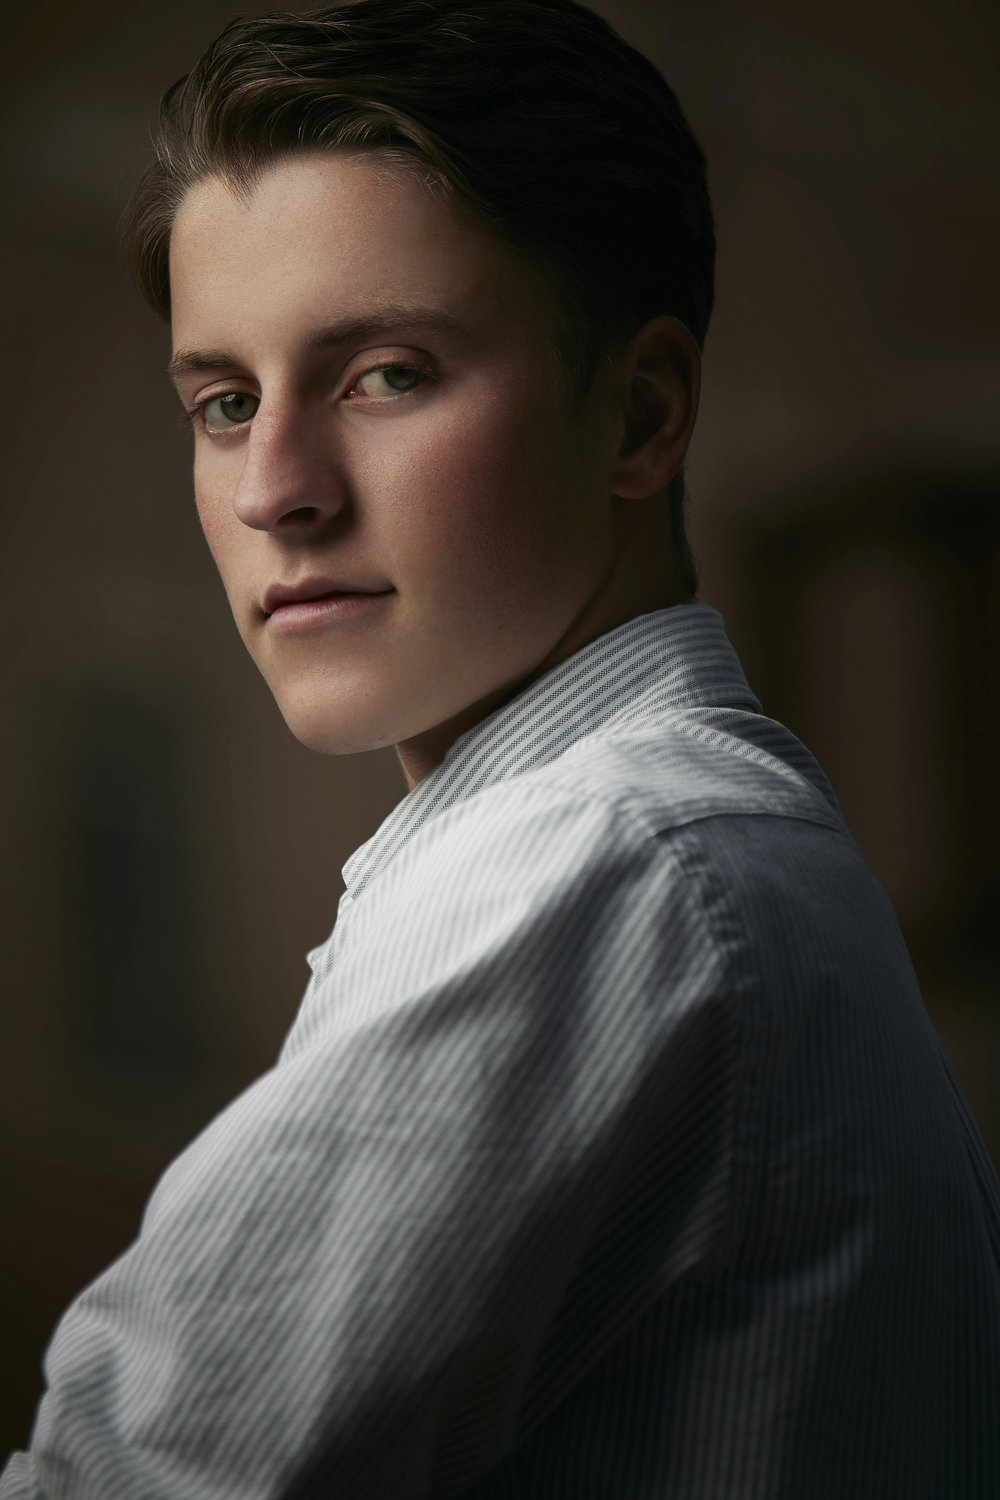 Dillon Anderson - McCracken County High School - Senior Portrait - Brad Rankin Studio